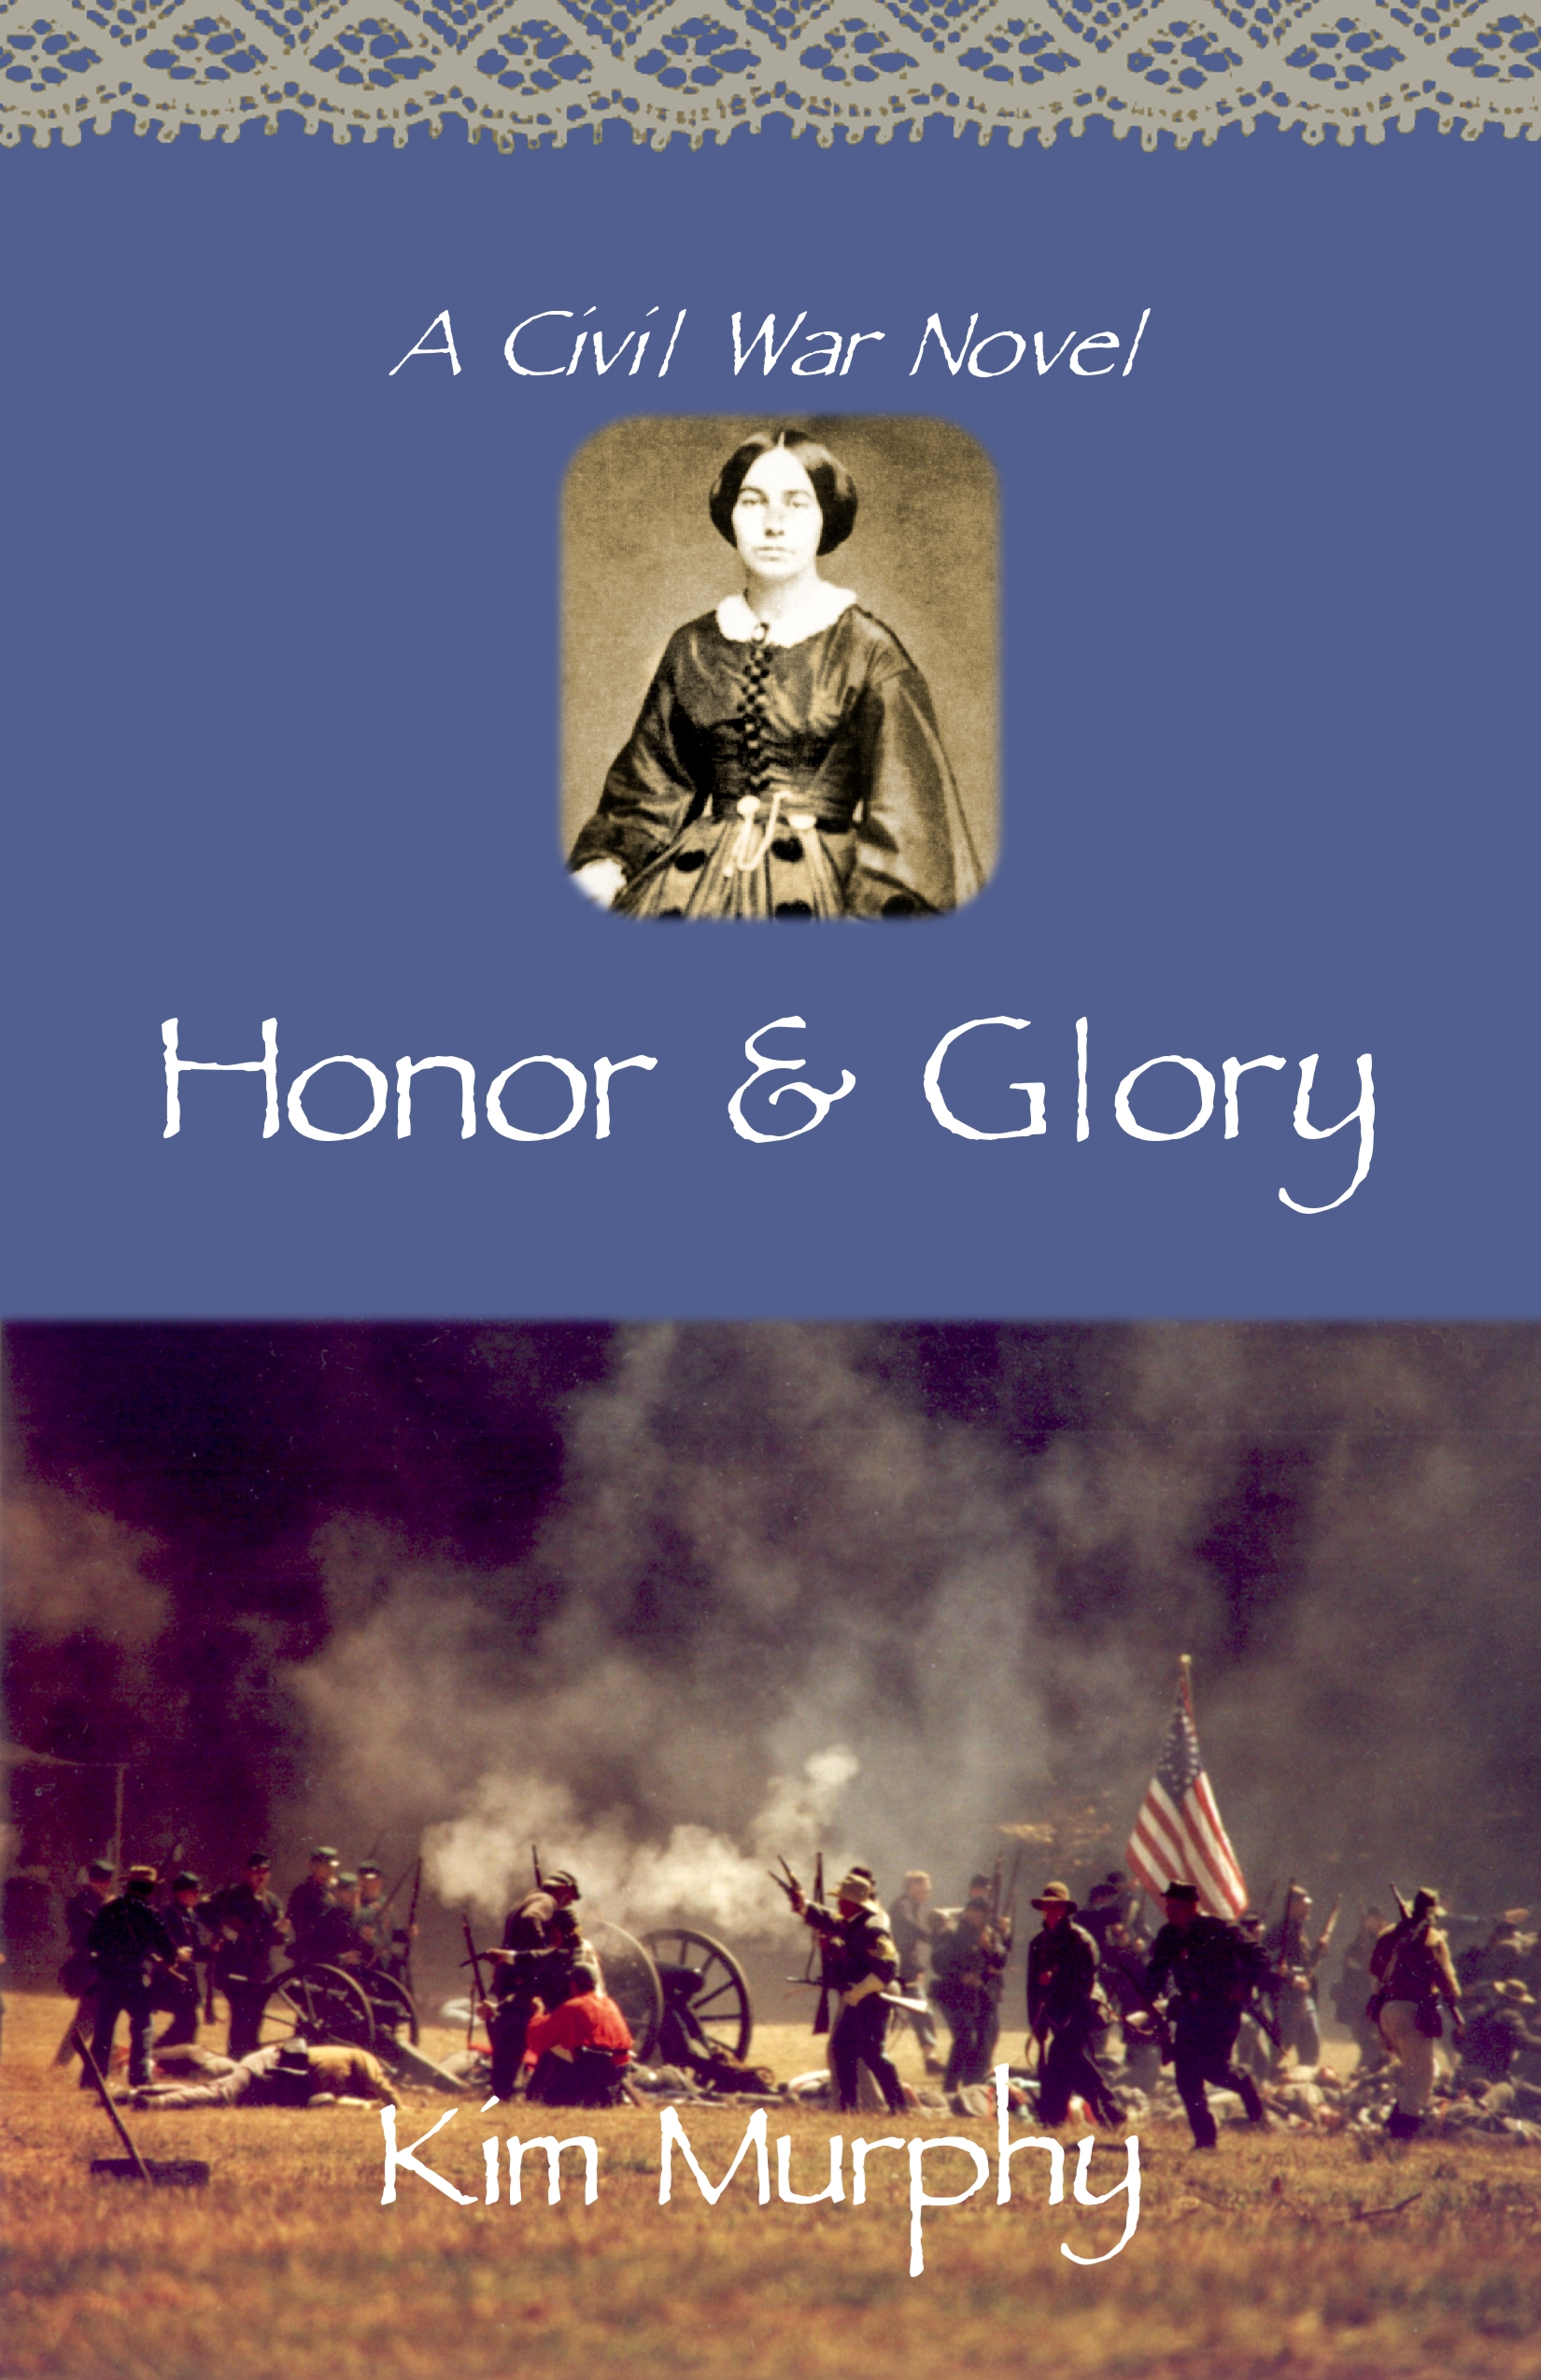 an analysis of the theme of honor and glory in battle of the ants by david thoreau The two novels all quiet on the western front by erich maria remarque and slaughterhouse 5 by kurt vonnegut romanticizes what war is like, emphasizing ideas such as glory, horror, honor, patriotic duty, and adventure.